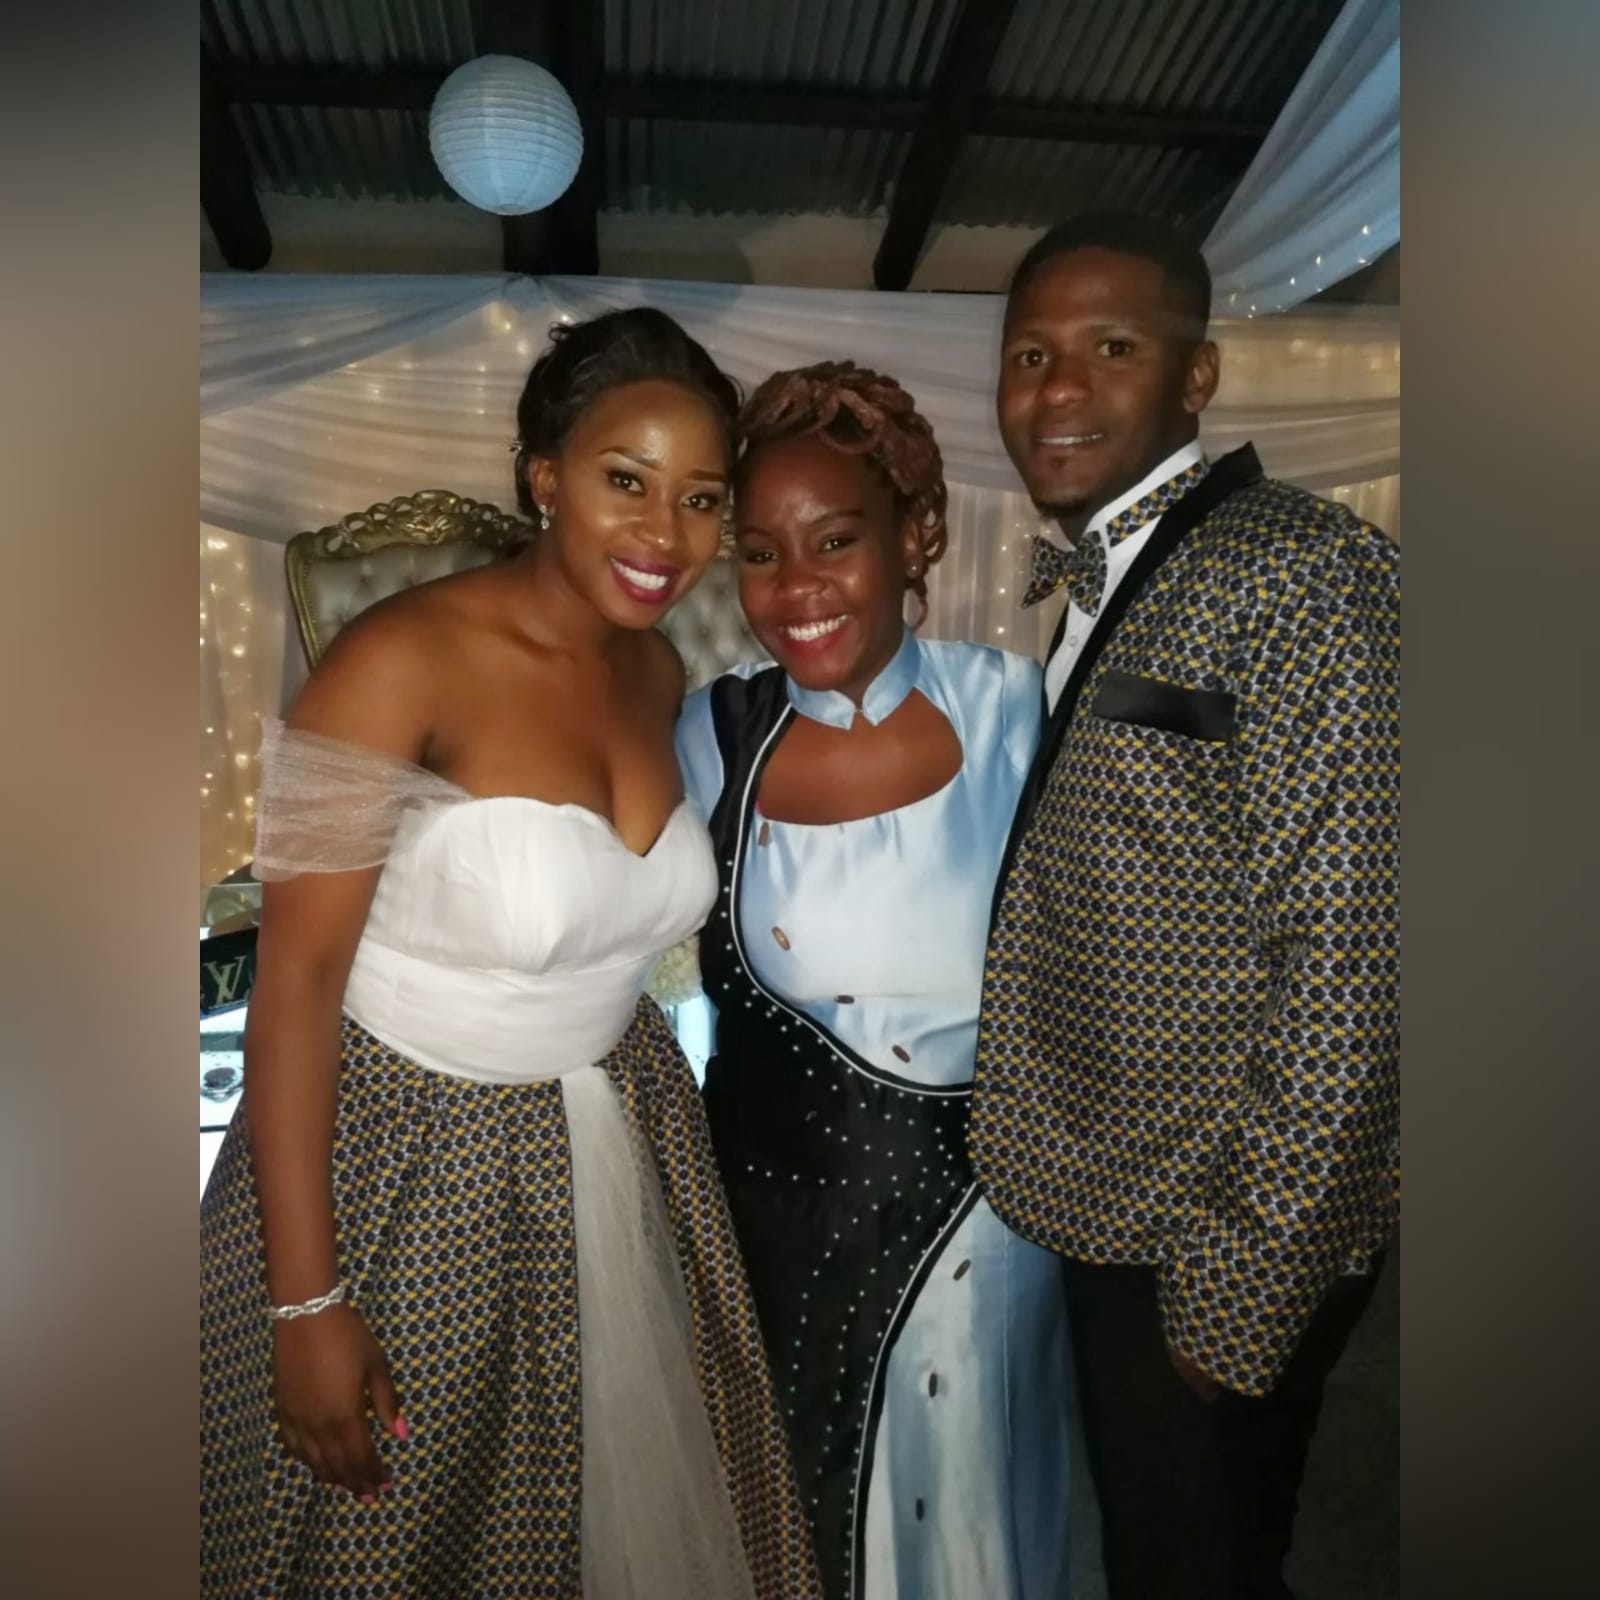 White and brown african traditional wedding dress 3 white and brown african traditional wedding dress. Sweetheart neckline, off shoulder tulle straps with a tulle skirt and an overlayer of african traditional fabric. Grooms matching blazer and bowtie.